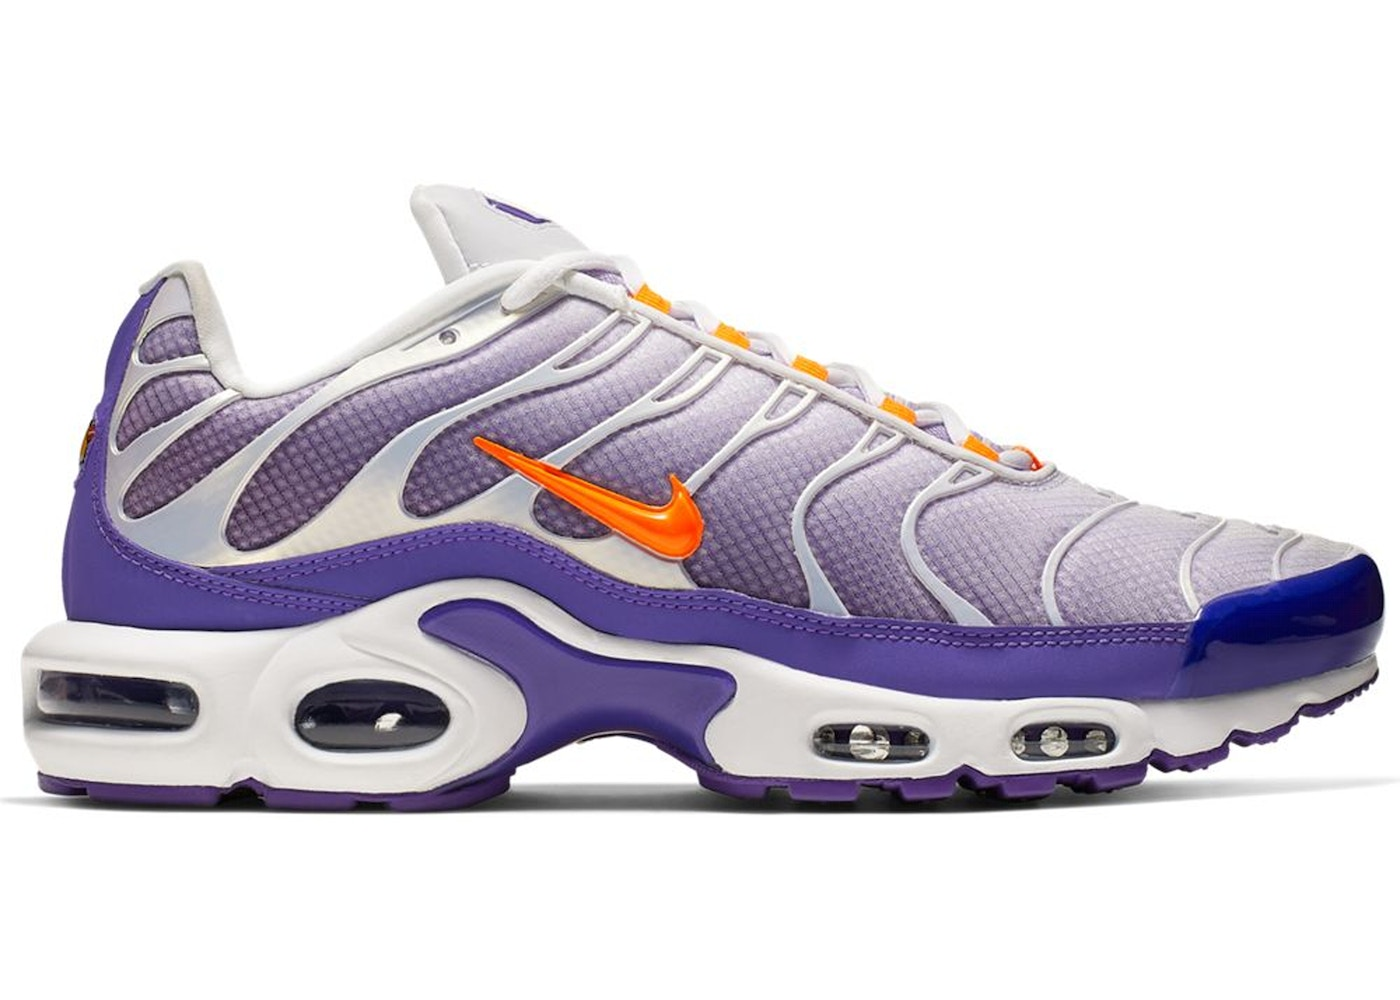 b480632555 Nike Air Max Shoes - Release Date